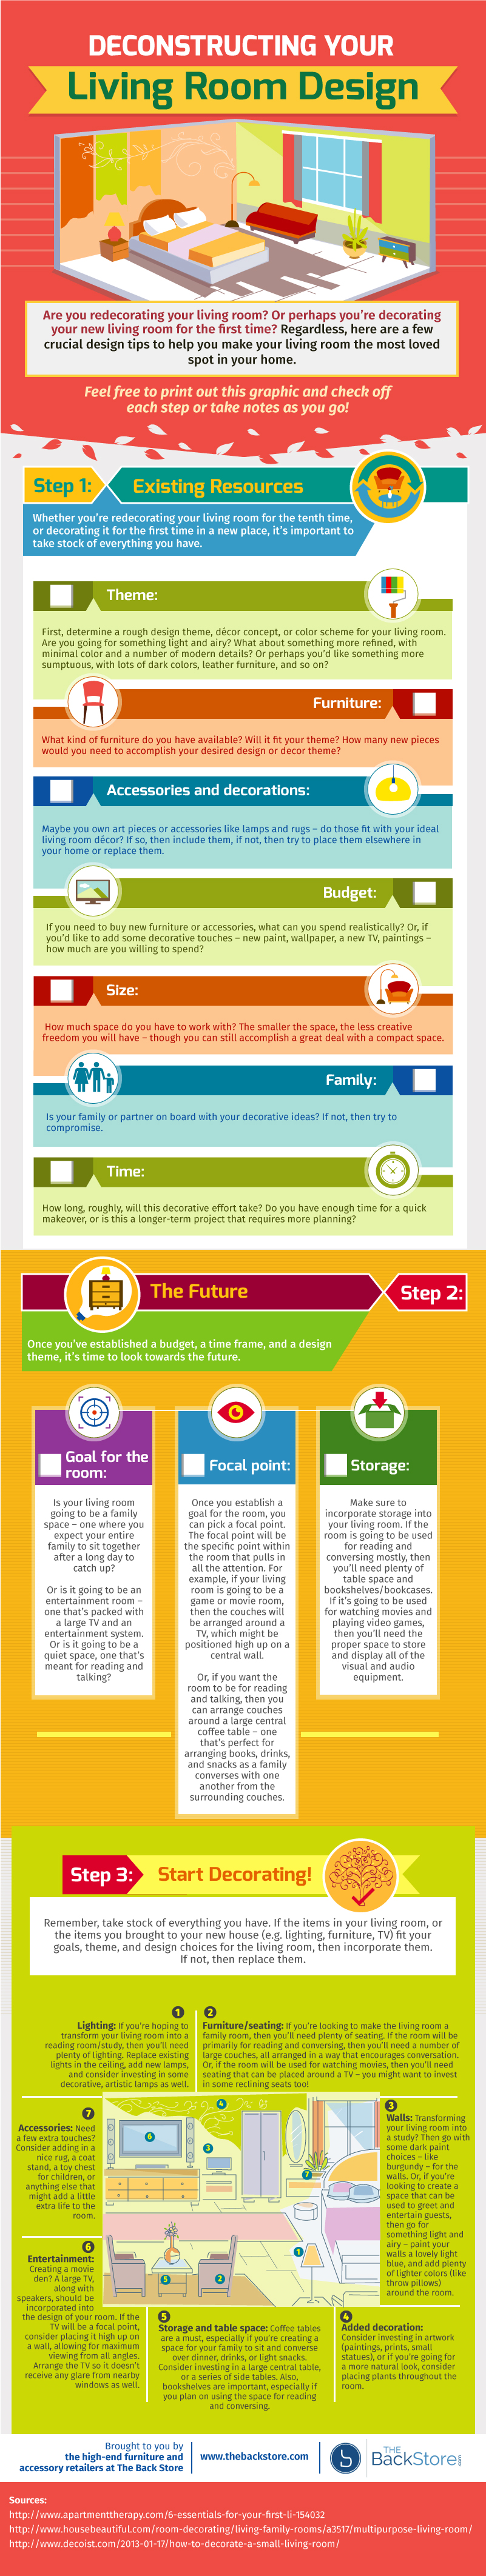 Deconstructing Your Living Room Design Infographic Blog